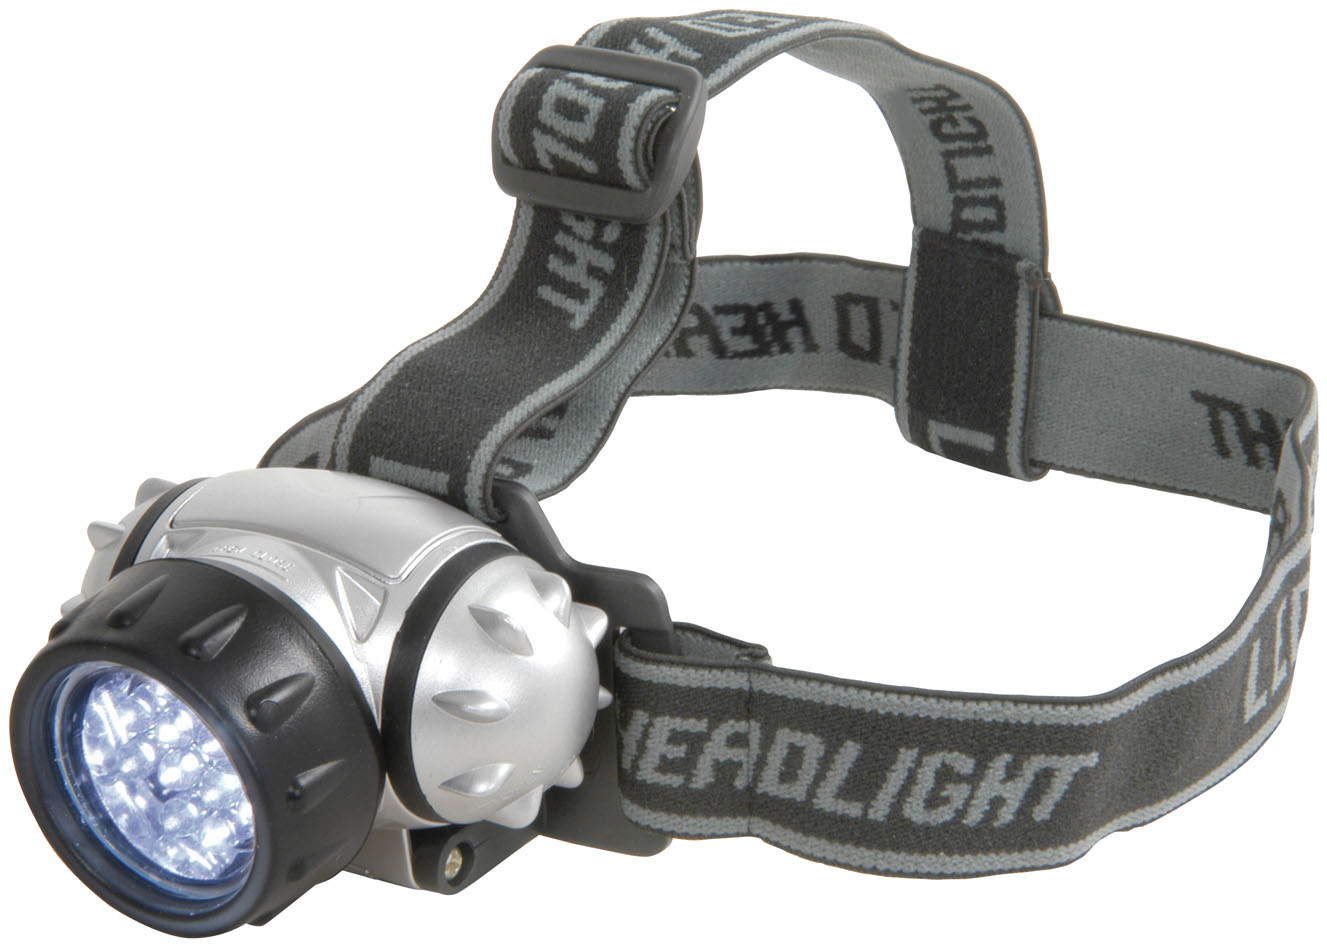 12 Led Headlight Hiking Camping Cycling Buy Online